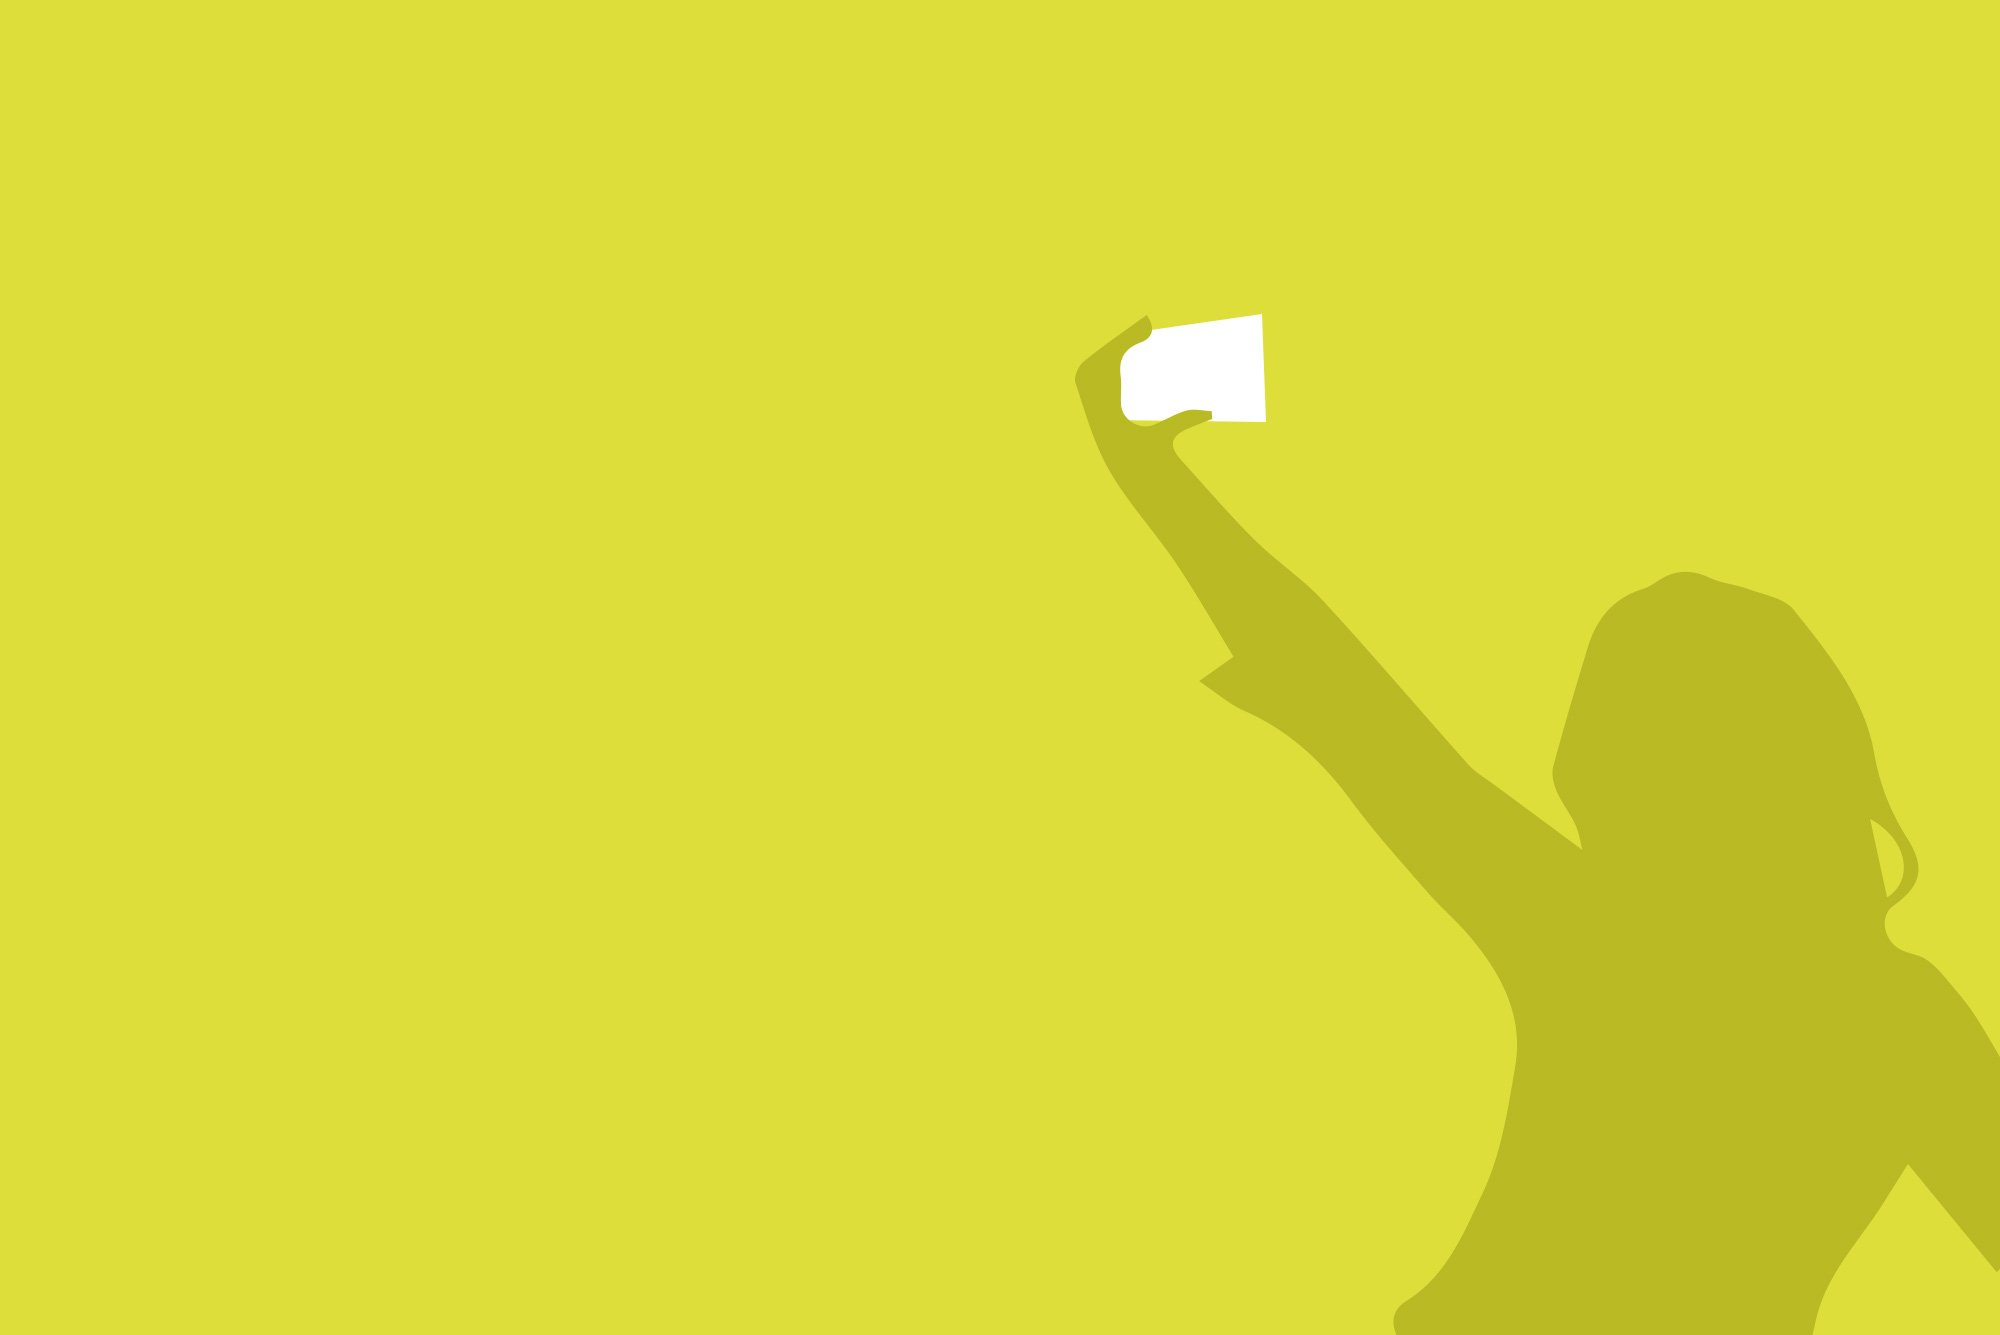 Silhouette of woman taking a selfie on yellow background